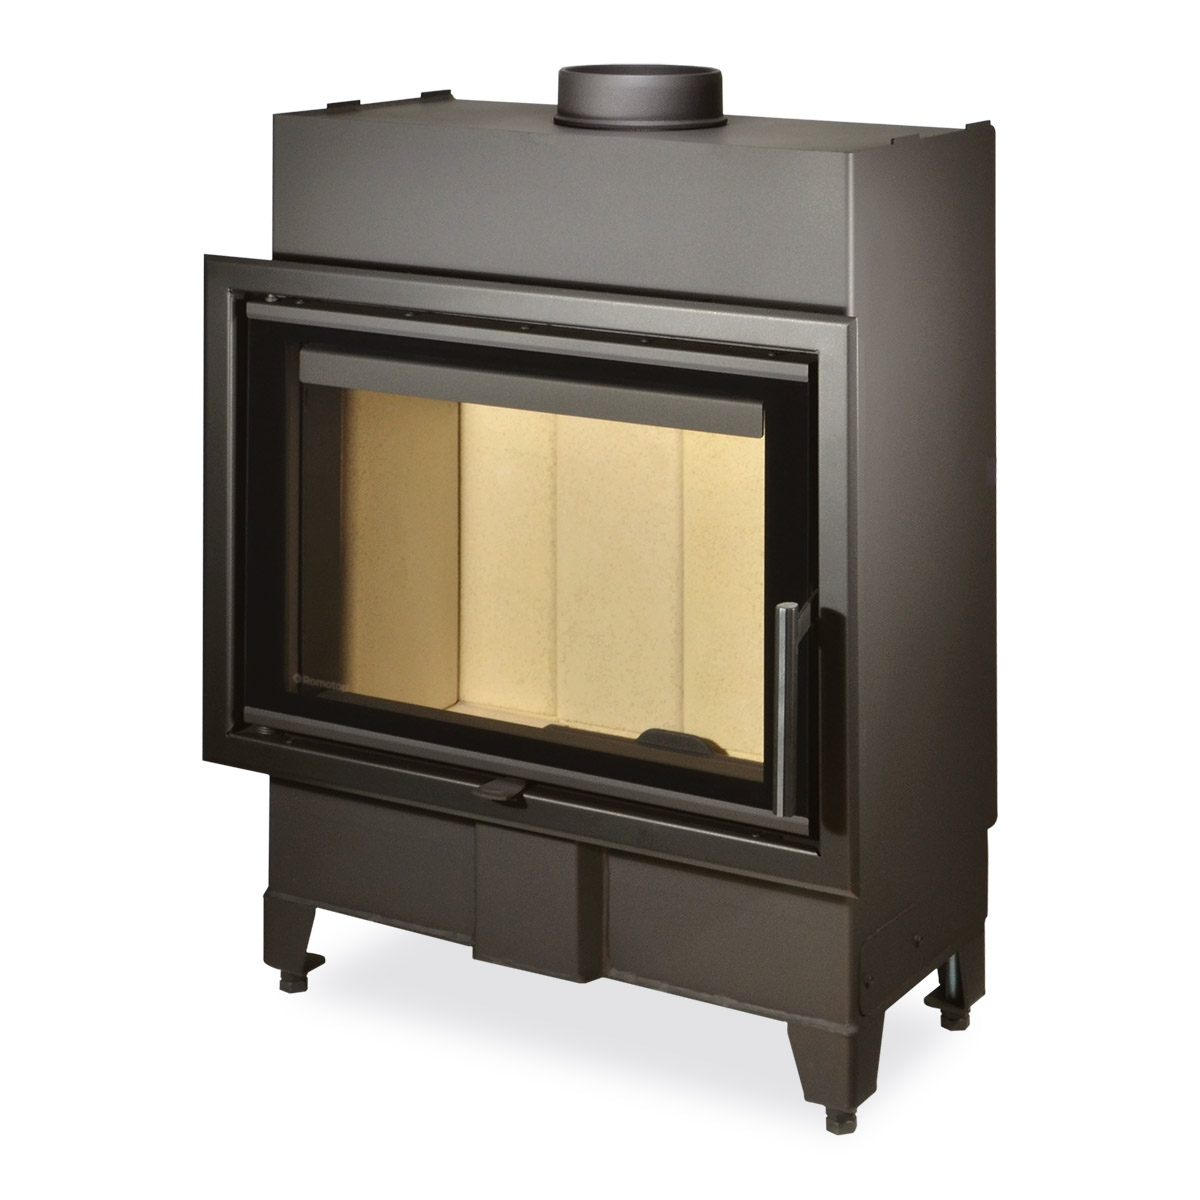 HEAT 2g 59.44.13 - straight fireplace insert